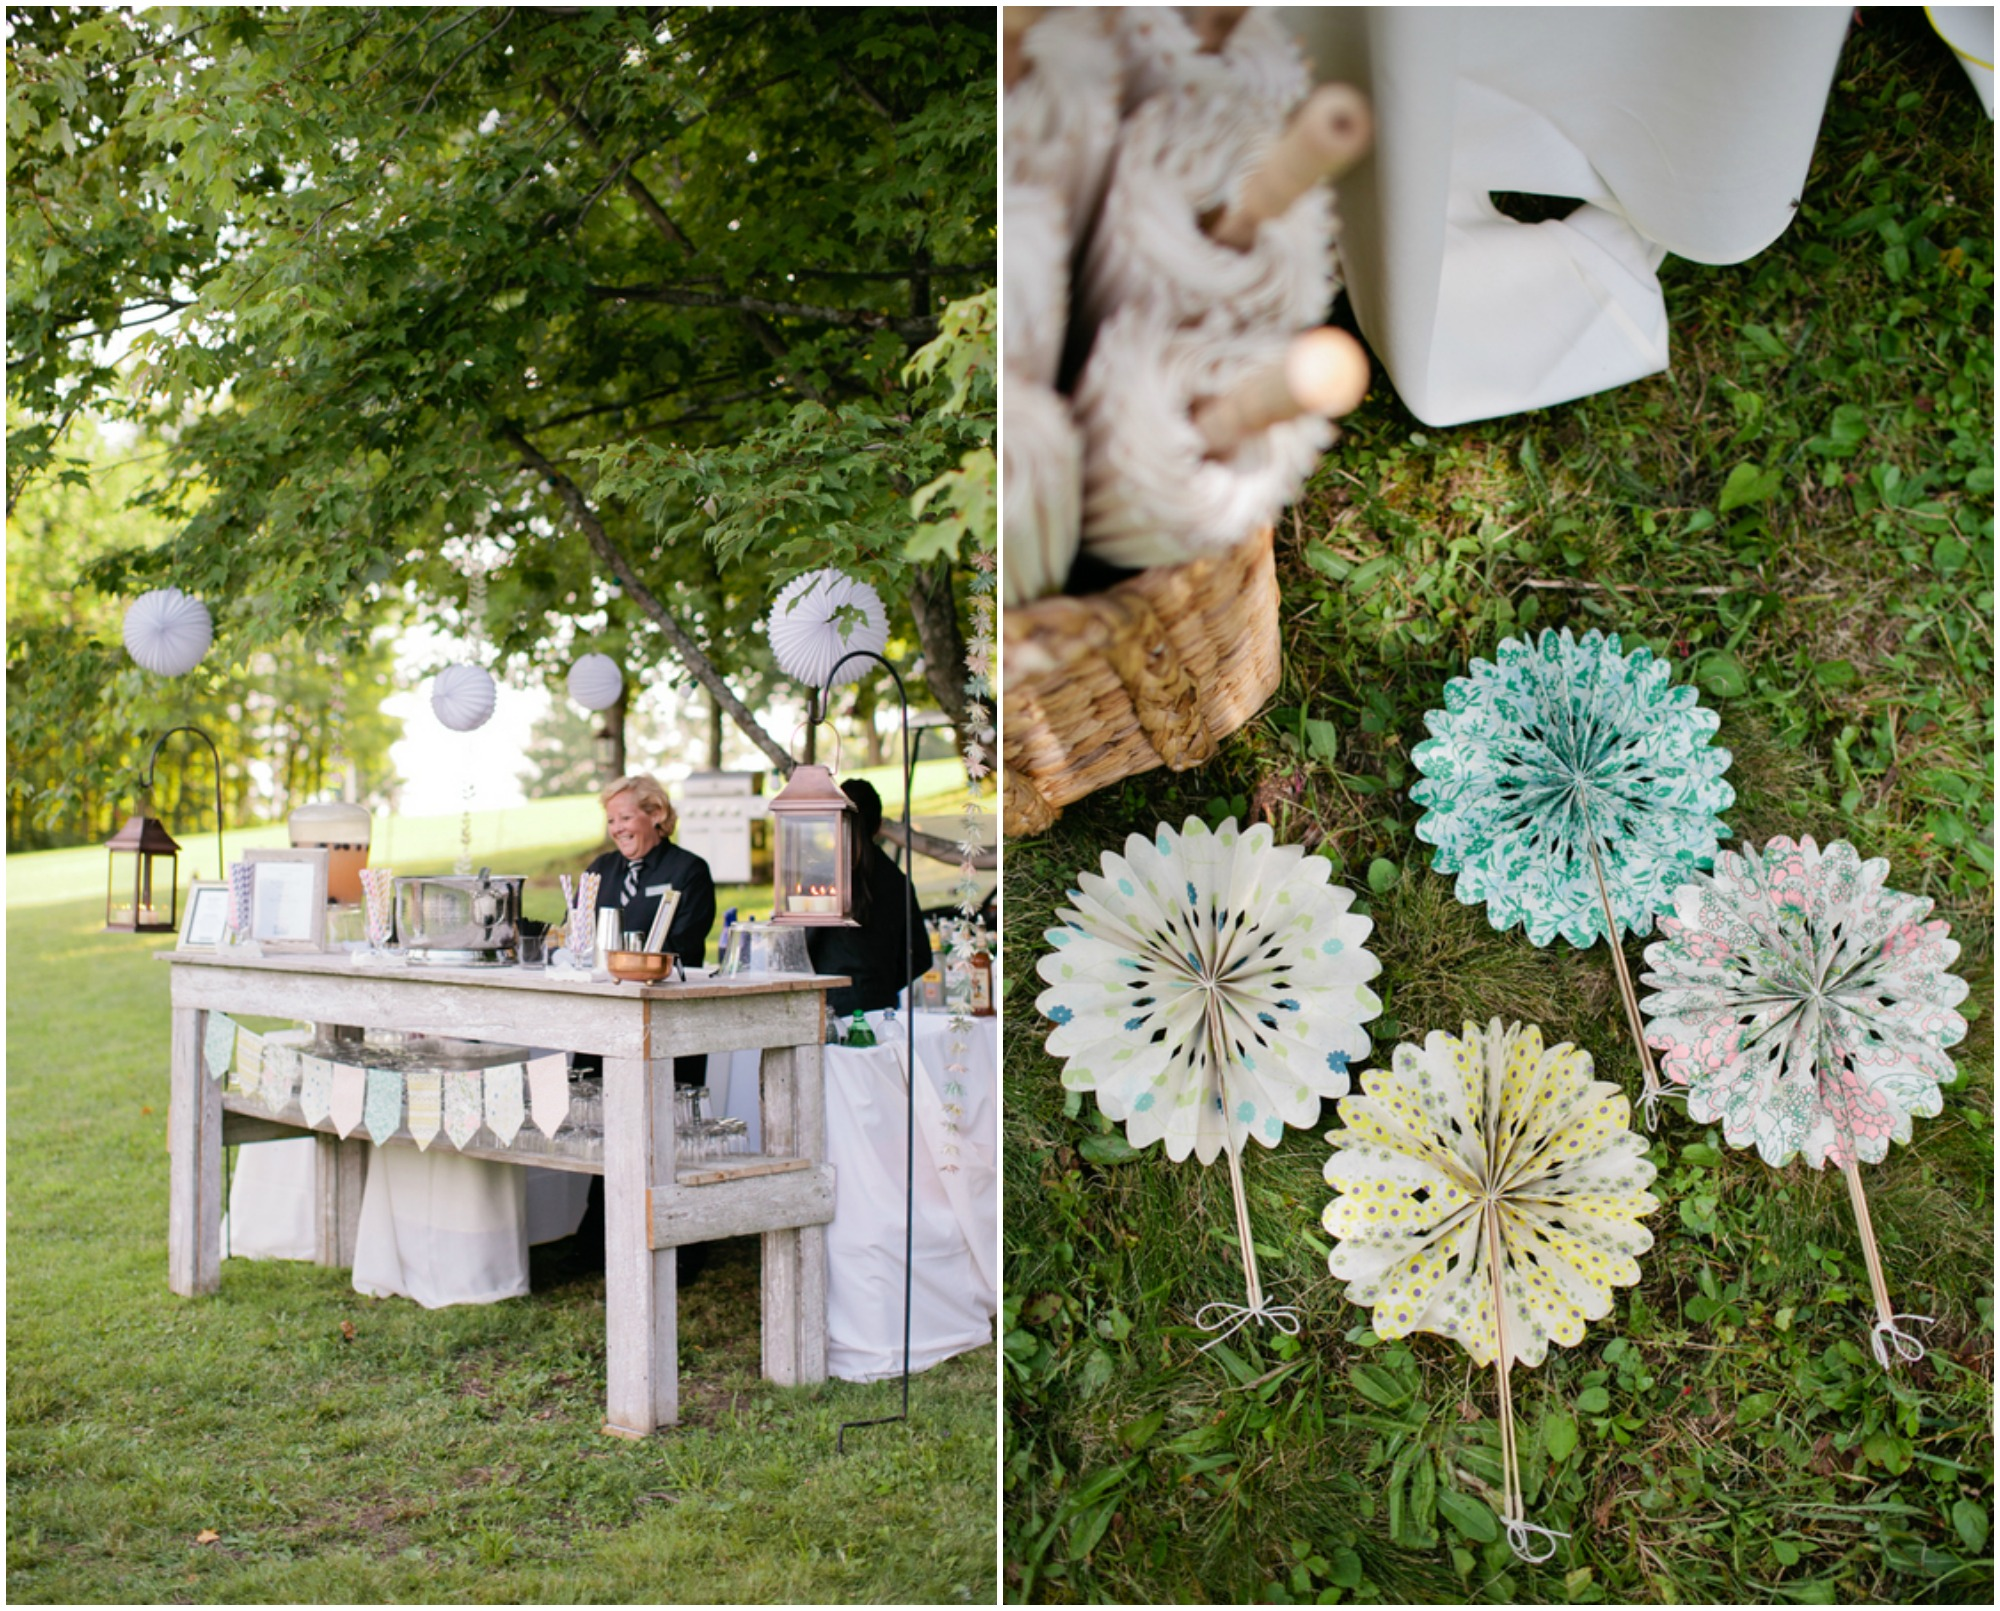 Chic Rustic Country Wedding: 520: Web Server Is Returning An